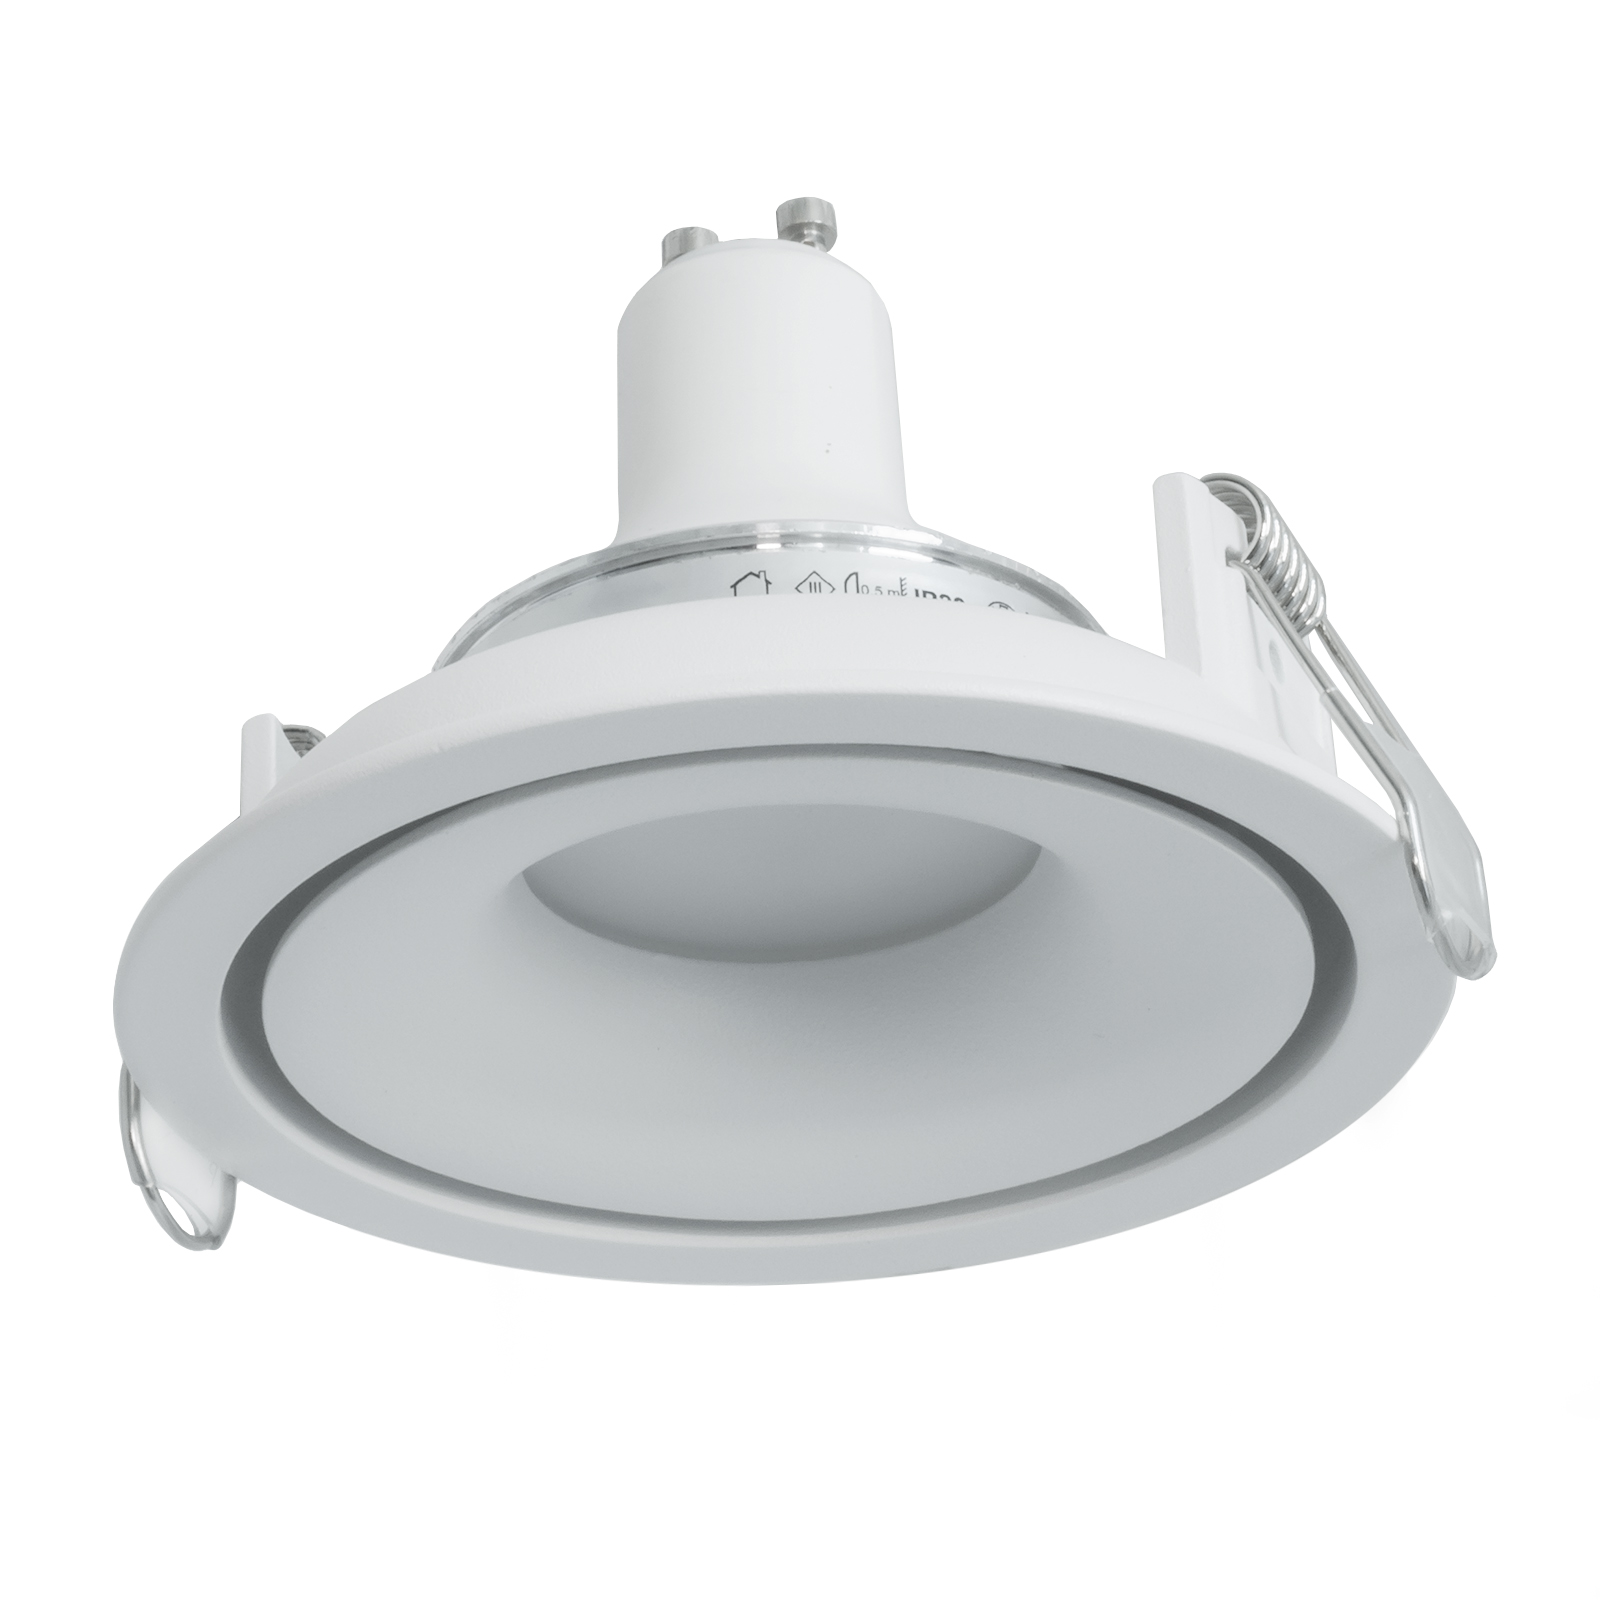 Spotlight round white recessed ceiling 90mm LED 5W GU10 lamp showcases shop